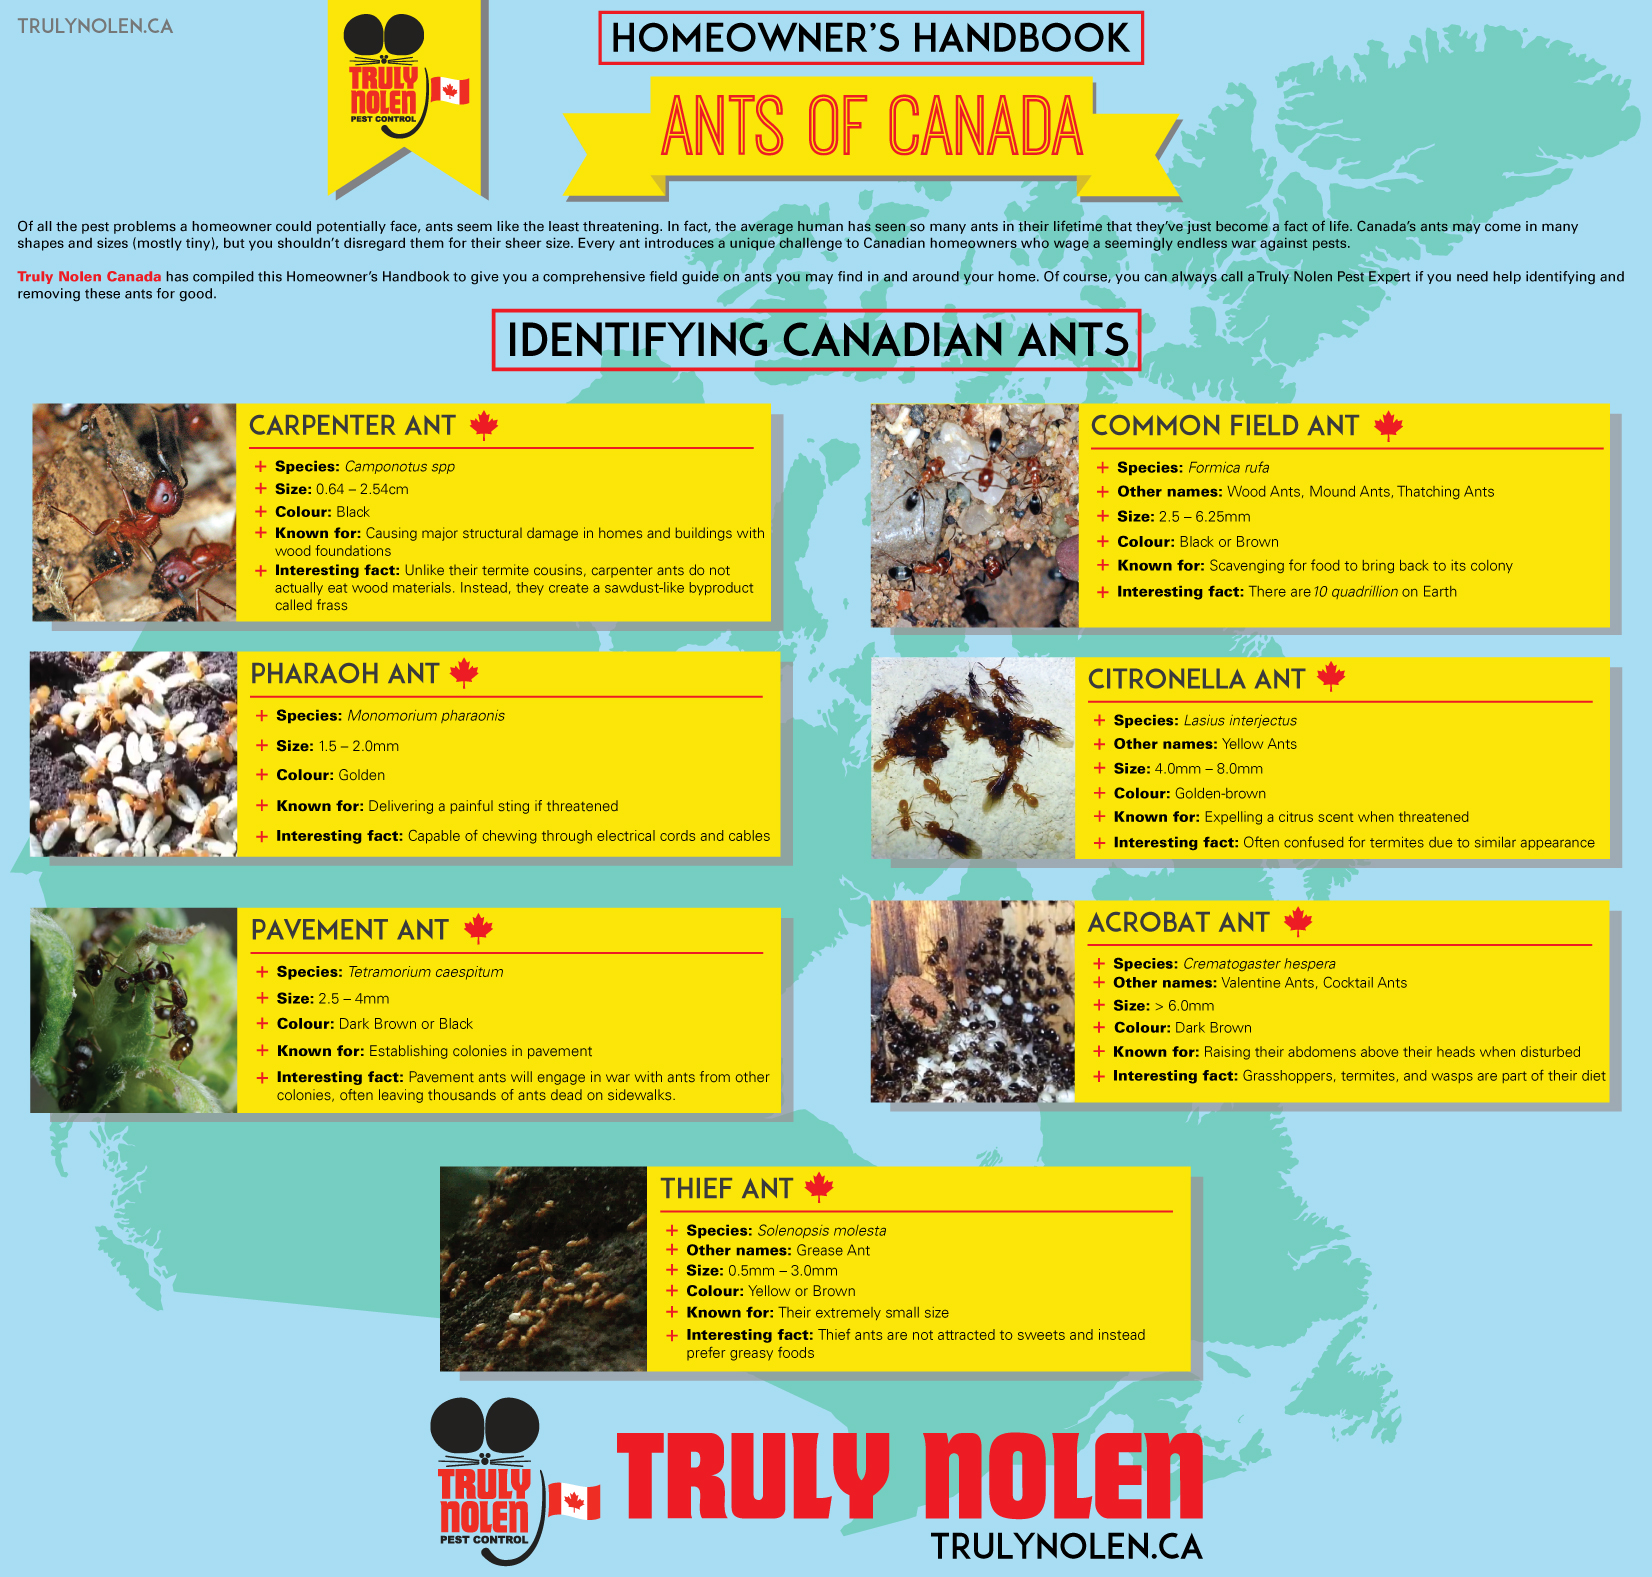 ants-of-canada-infographic-updated 051414